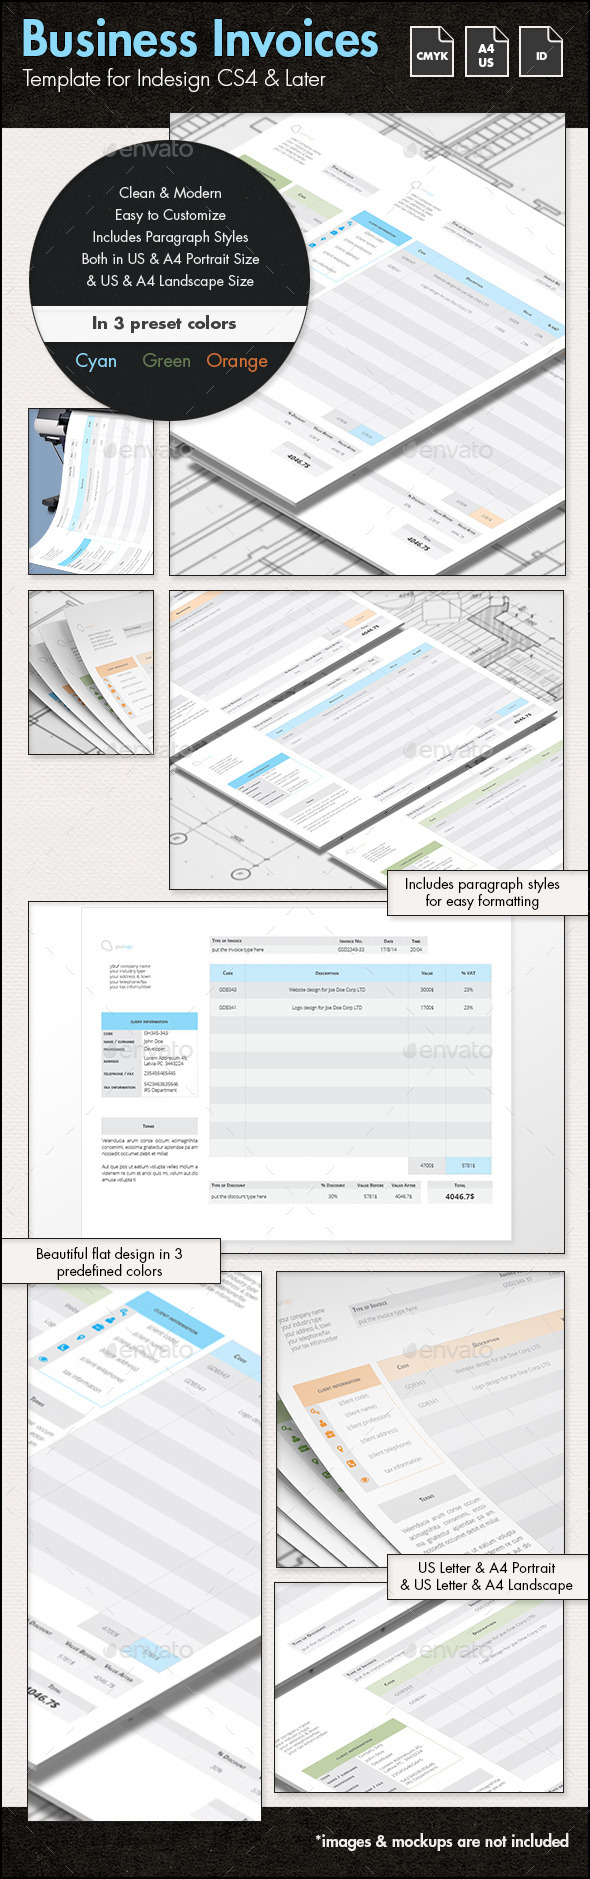 Business Invoices - A4 & US Letter - Proposals & Invoices Stationery